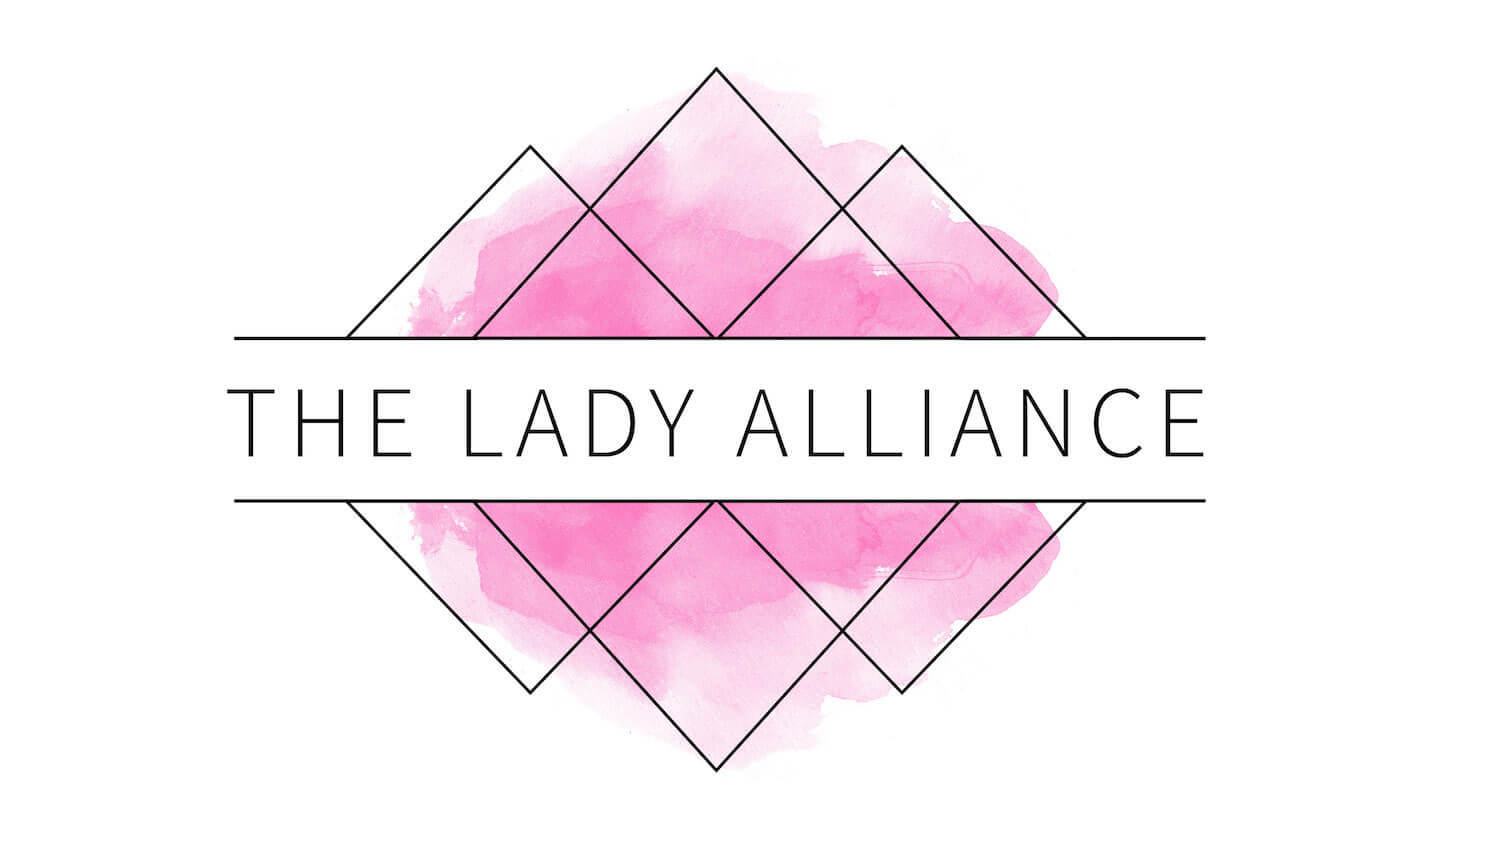 The Lady Alliance